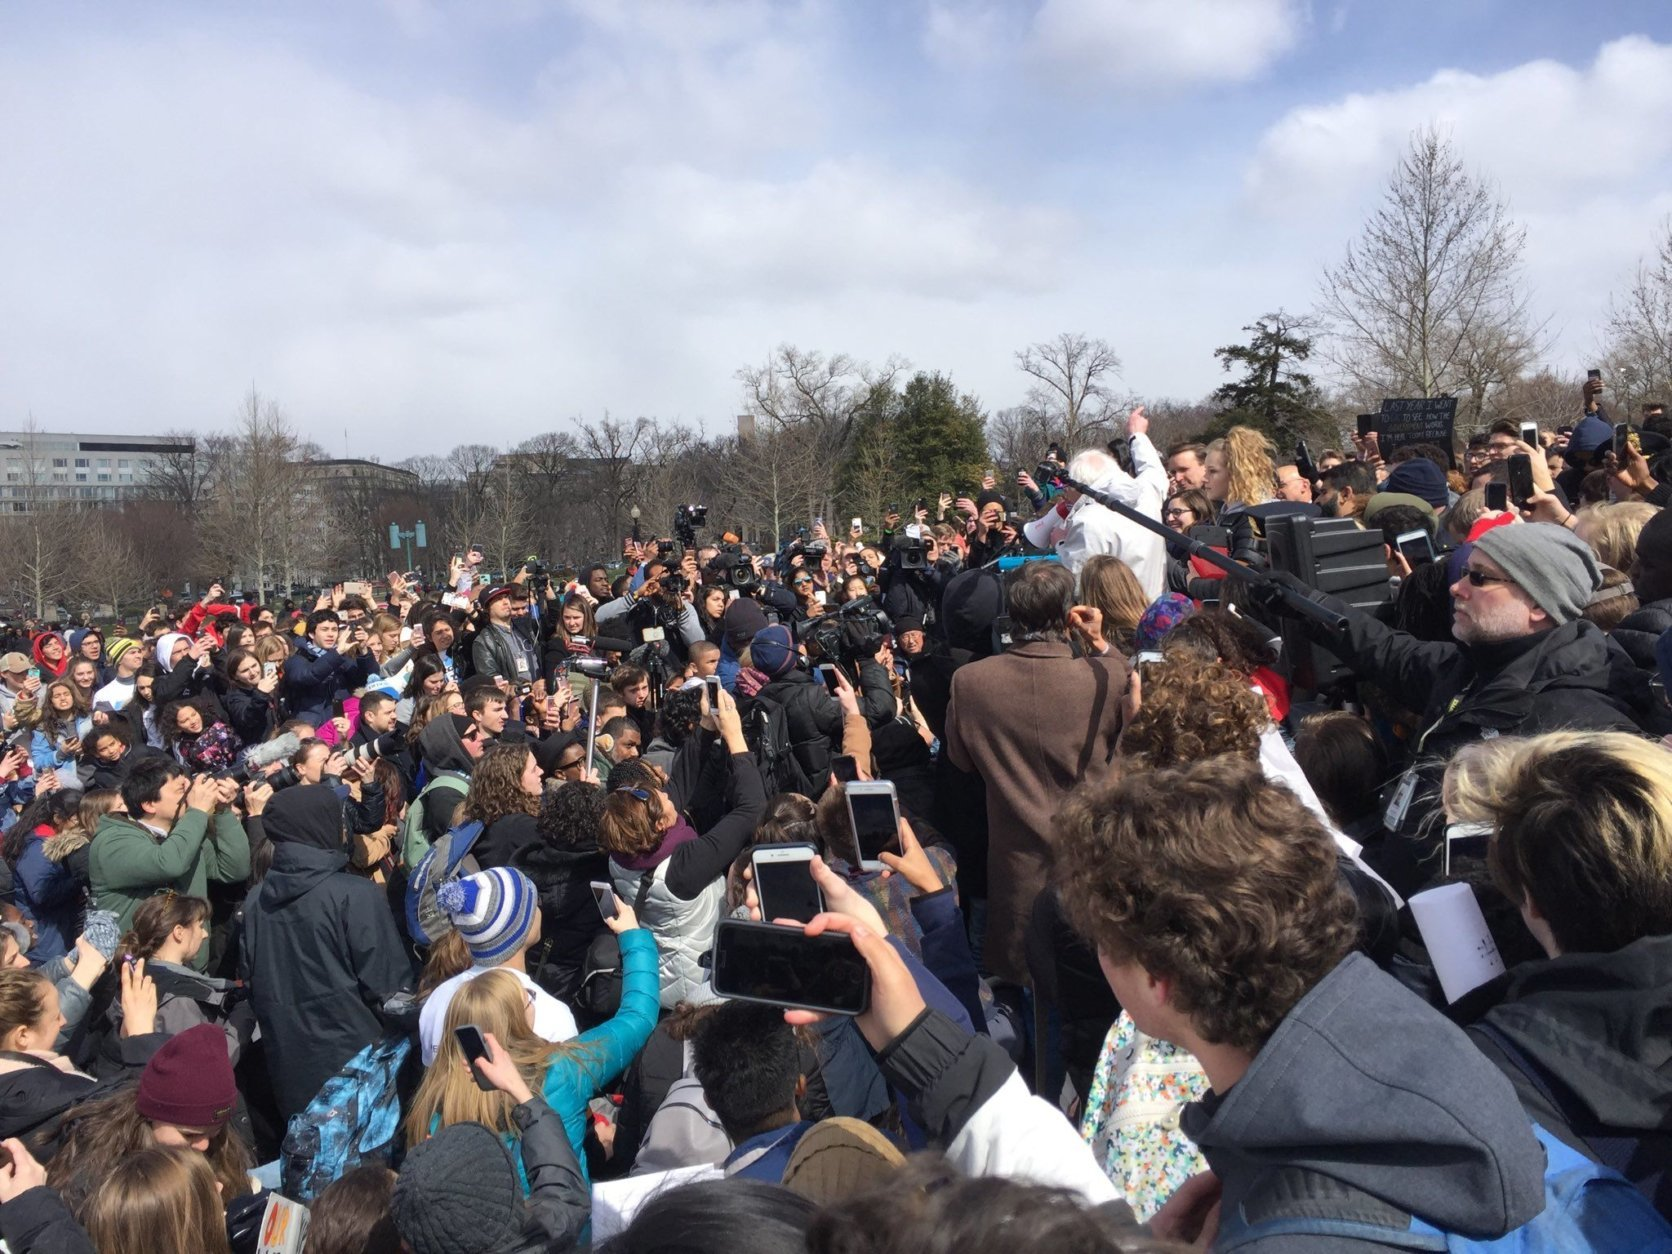 Sen. Bernie Sanders' arrival (center in white) caused an uproar among students  demanding action at the U.S. Capitol. (WTOP/Kristi King)